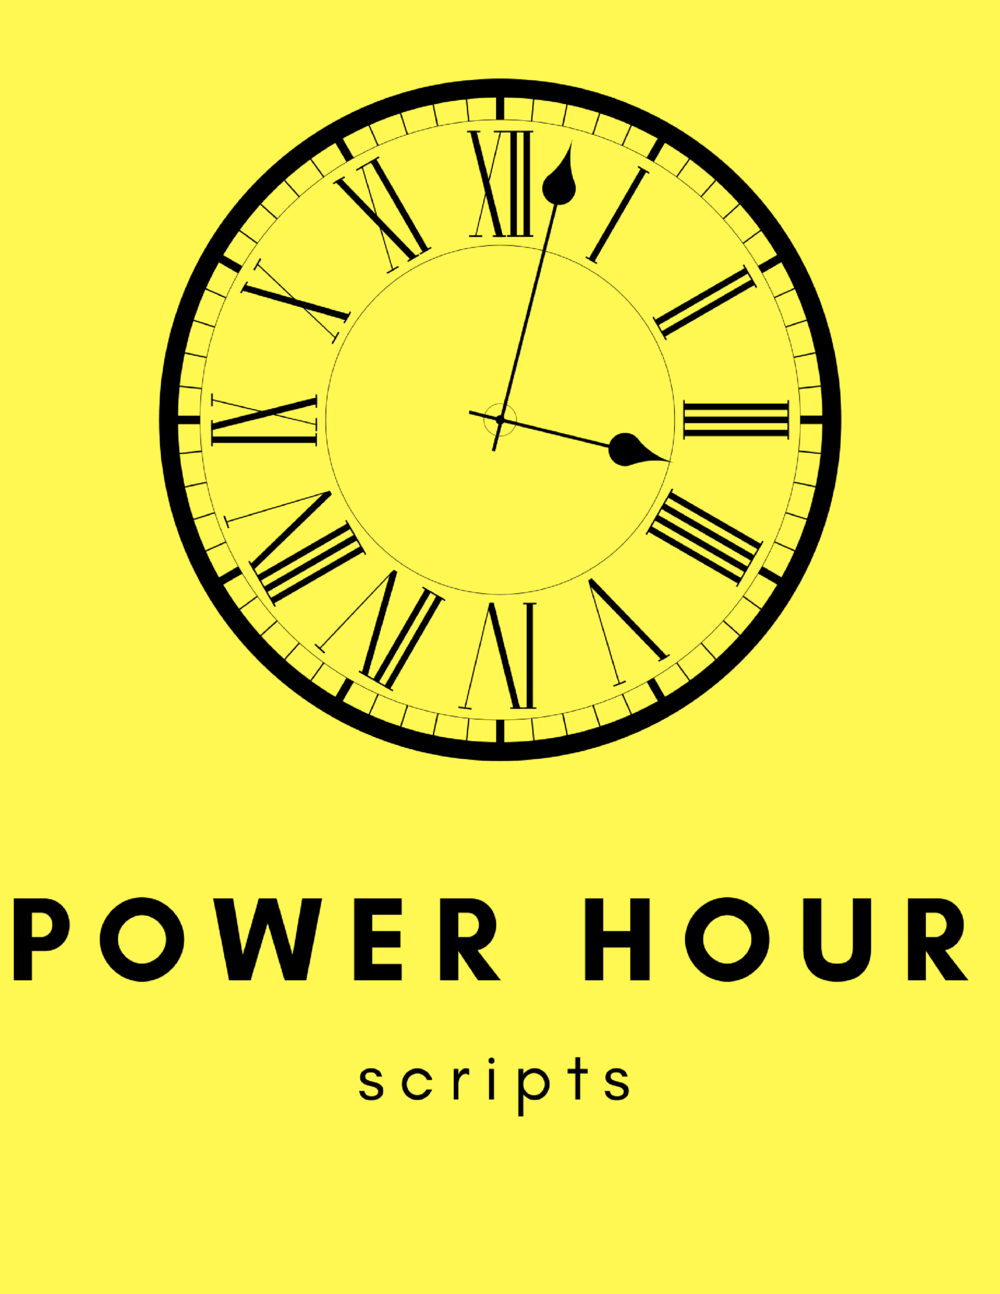 PowerHourGraphic.png